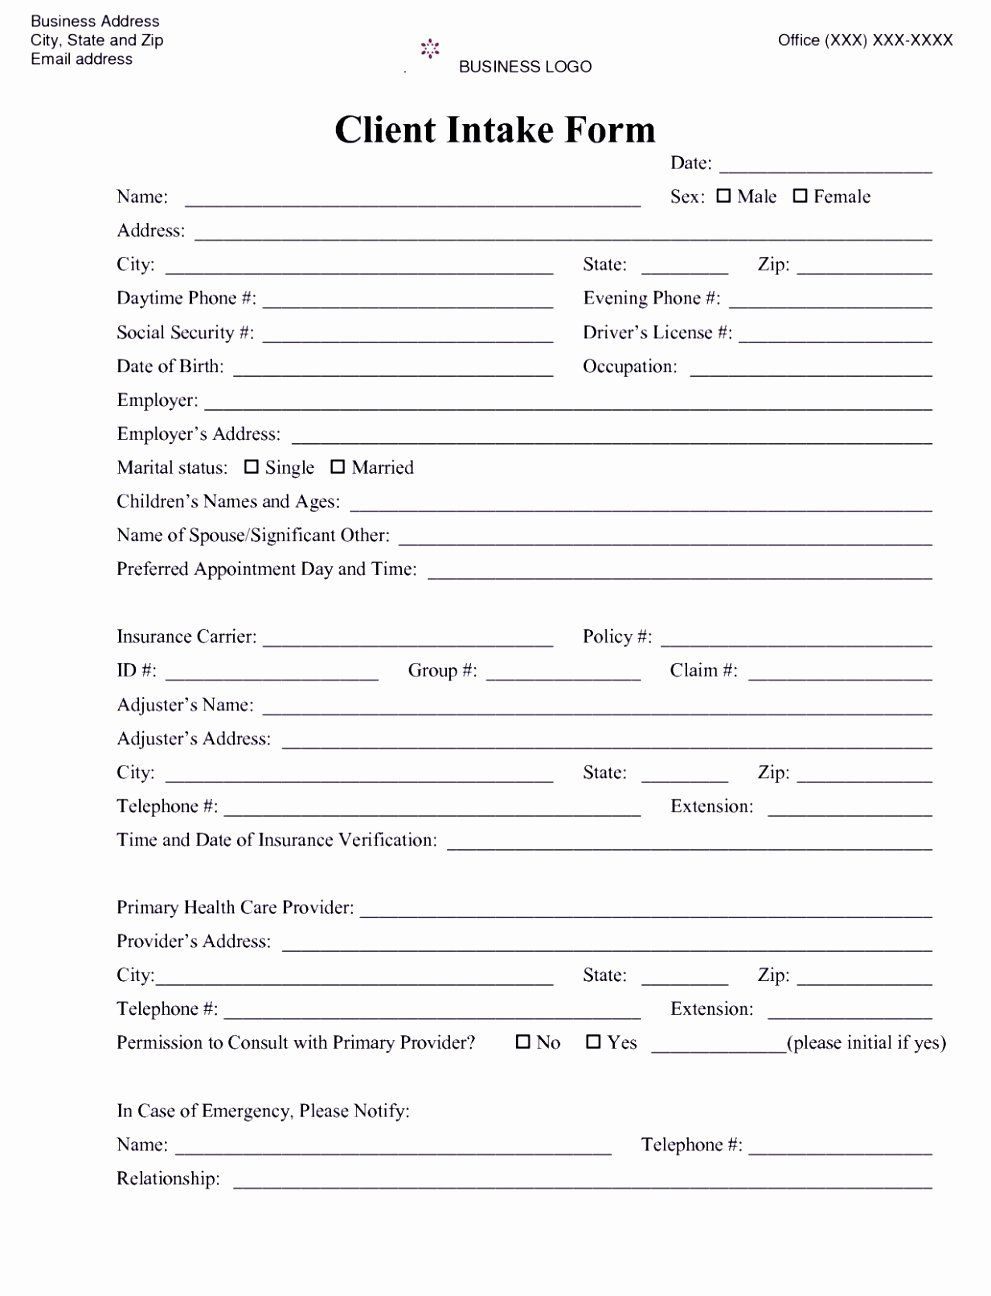 Counseling Intake Form Template Elegant 6 Counselling Referral Form Template Uyefi Treatment Plan Template Certificate Of Completion Template Counseling Forms